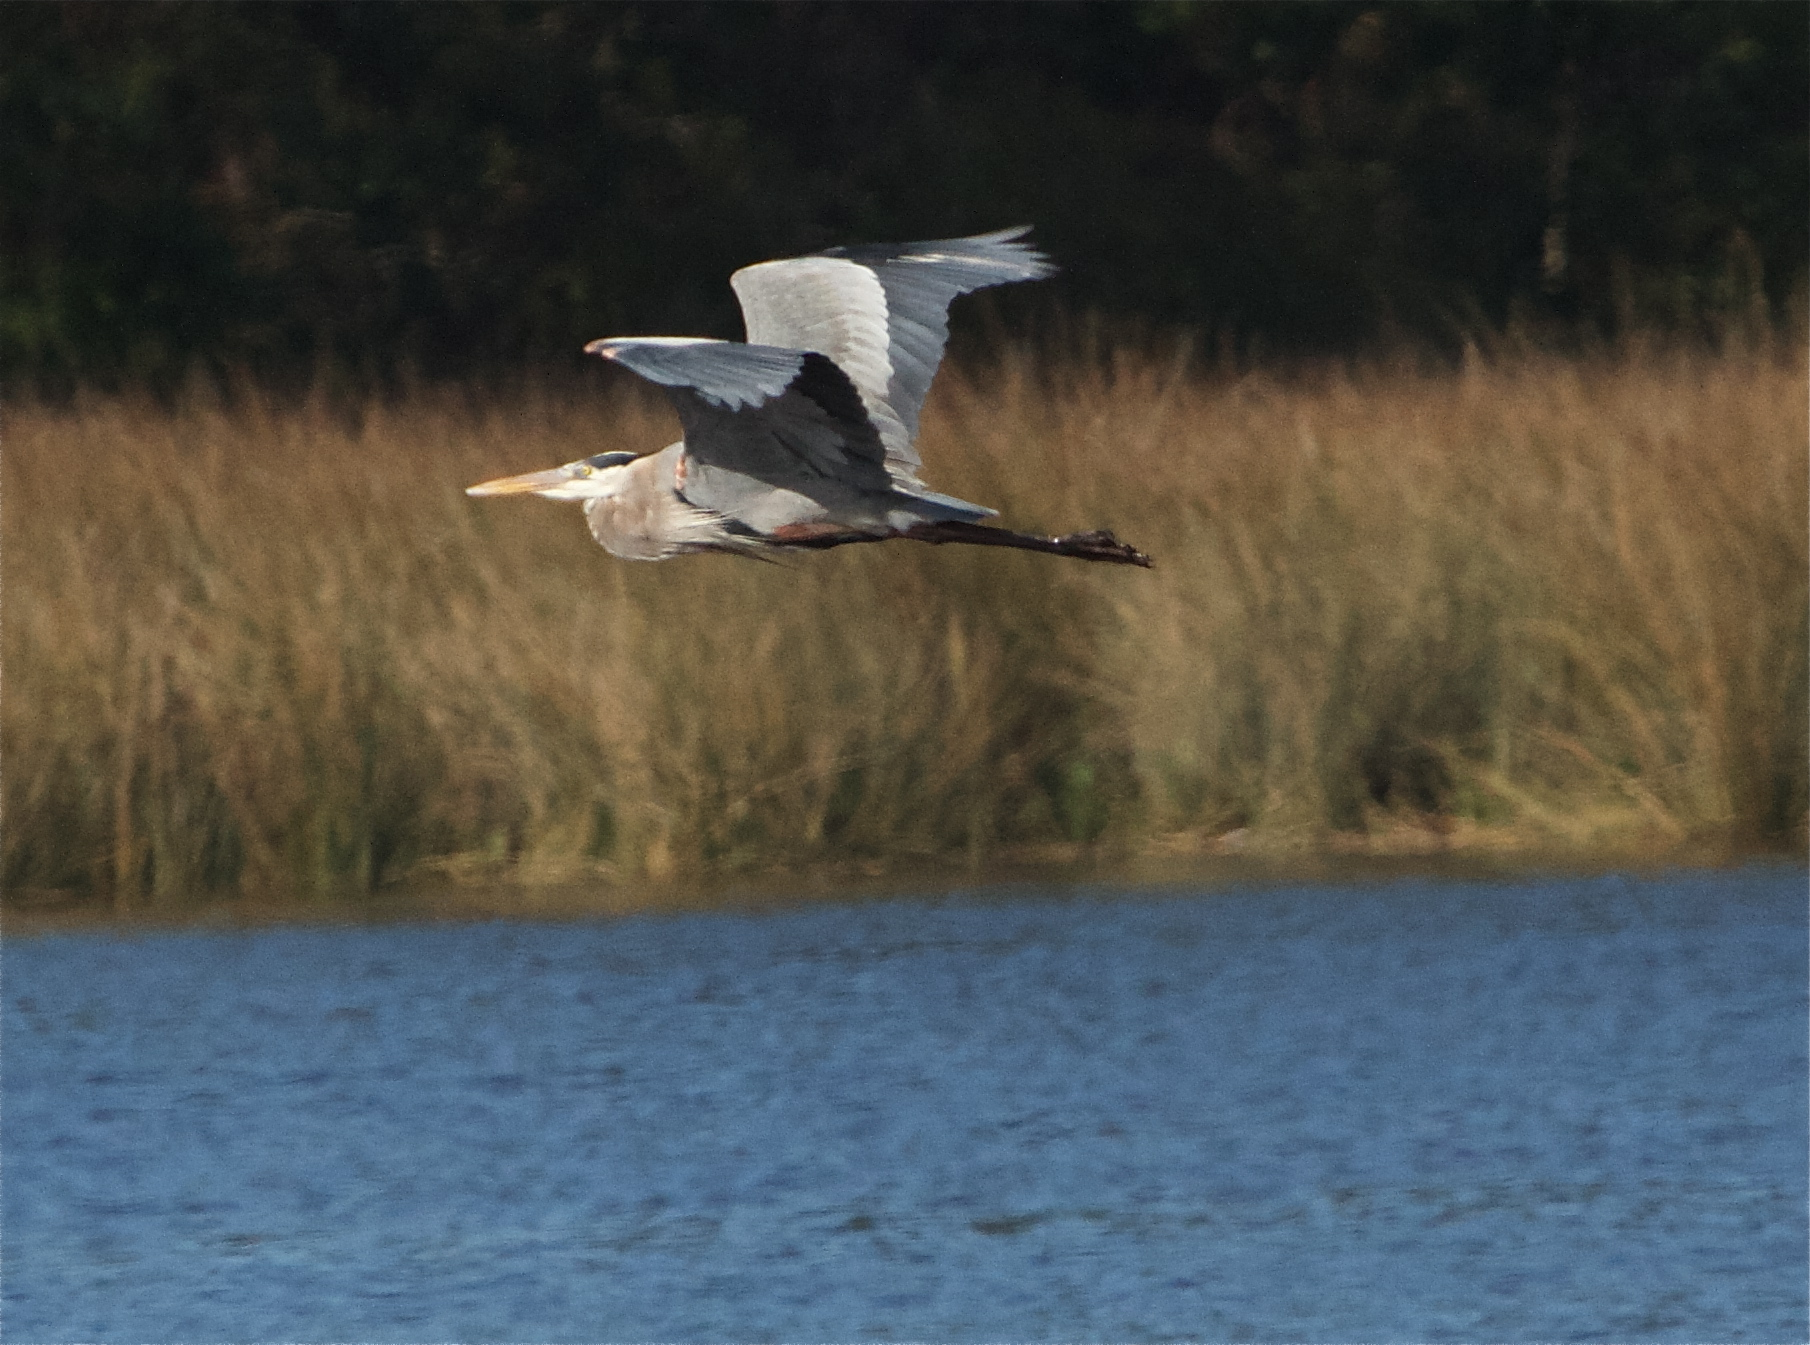 Old Man River, the great blue heron takes wing!